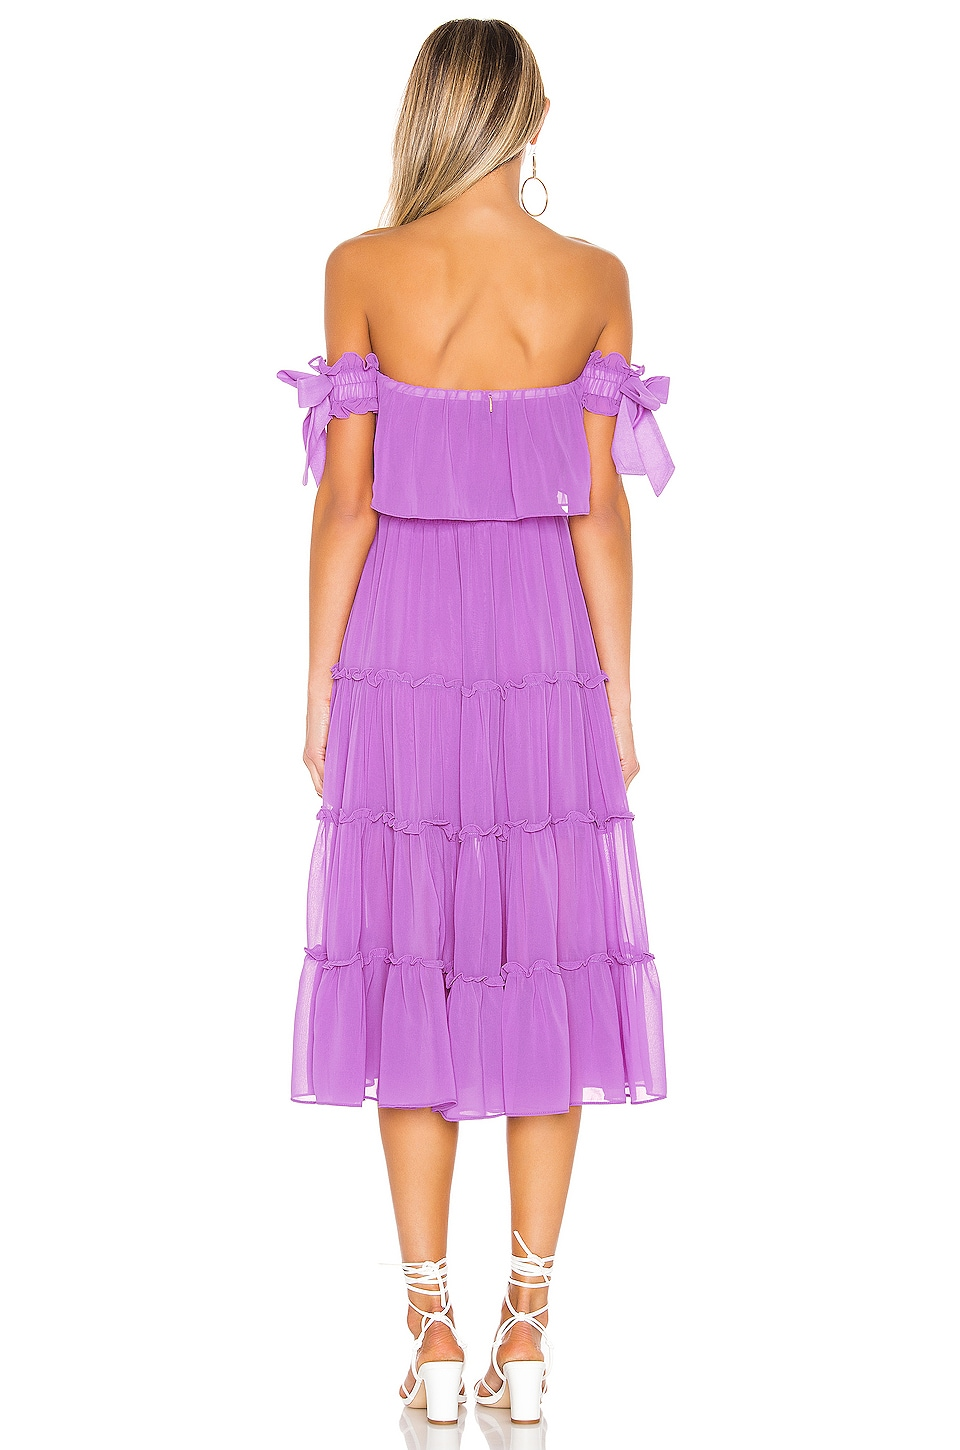 X REVOLVE Micaela Dress, view 3, click to view large image.